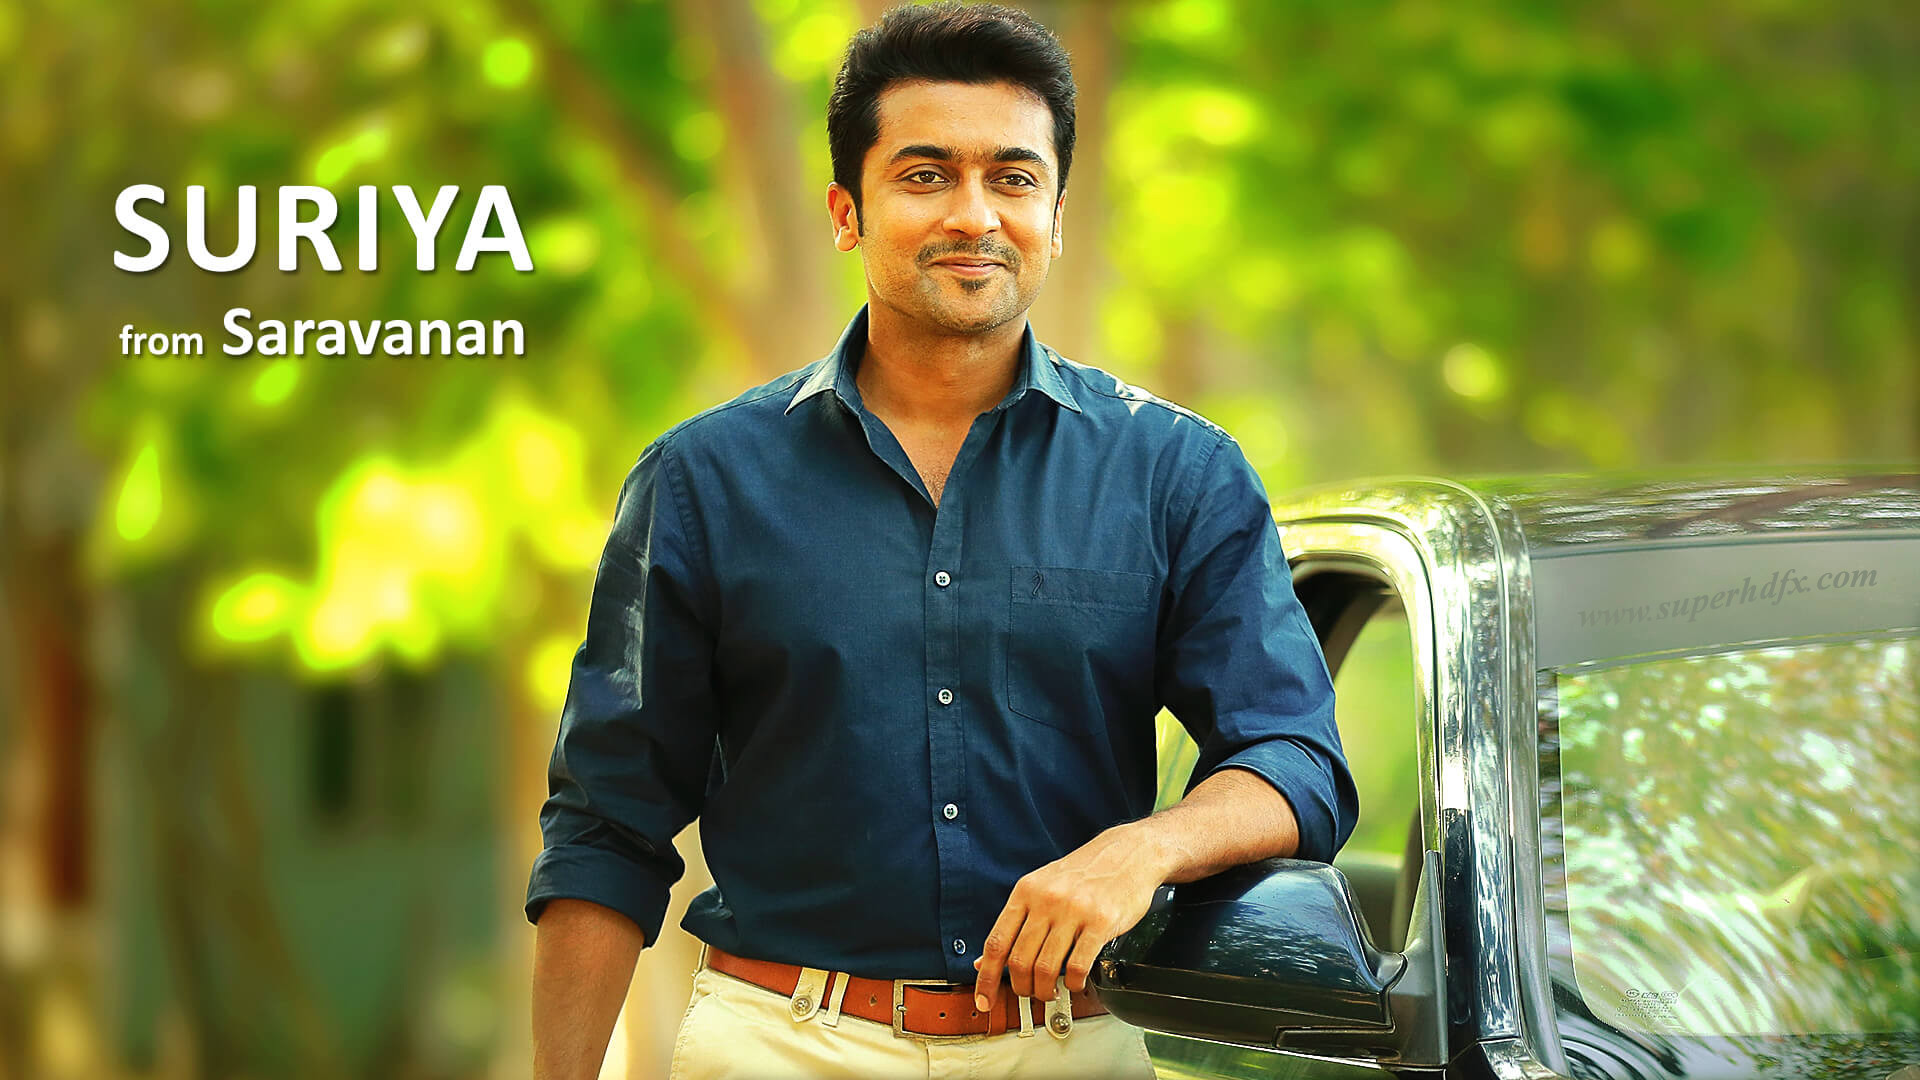 surya hd wallpapers 2018 64 background pictures